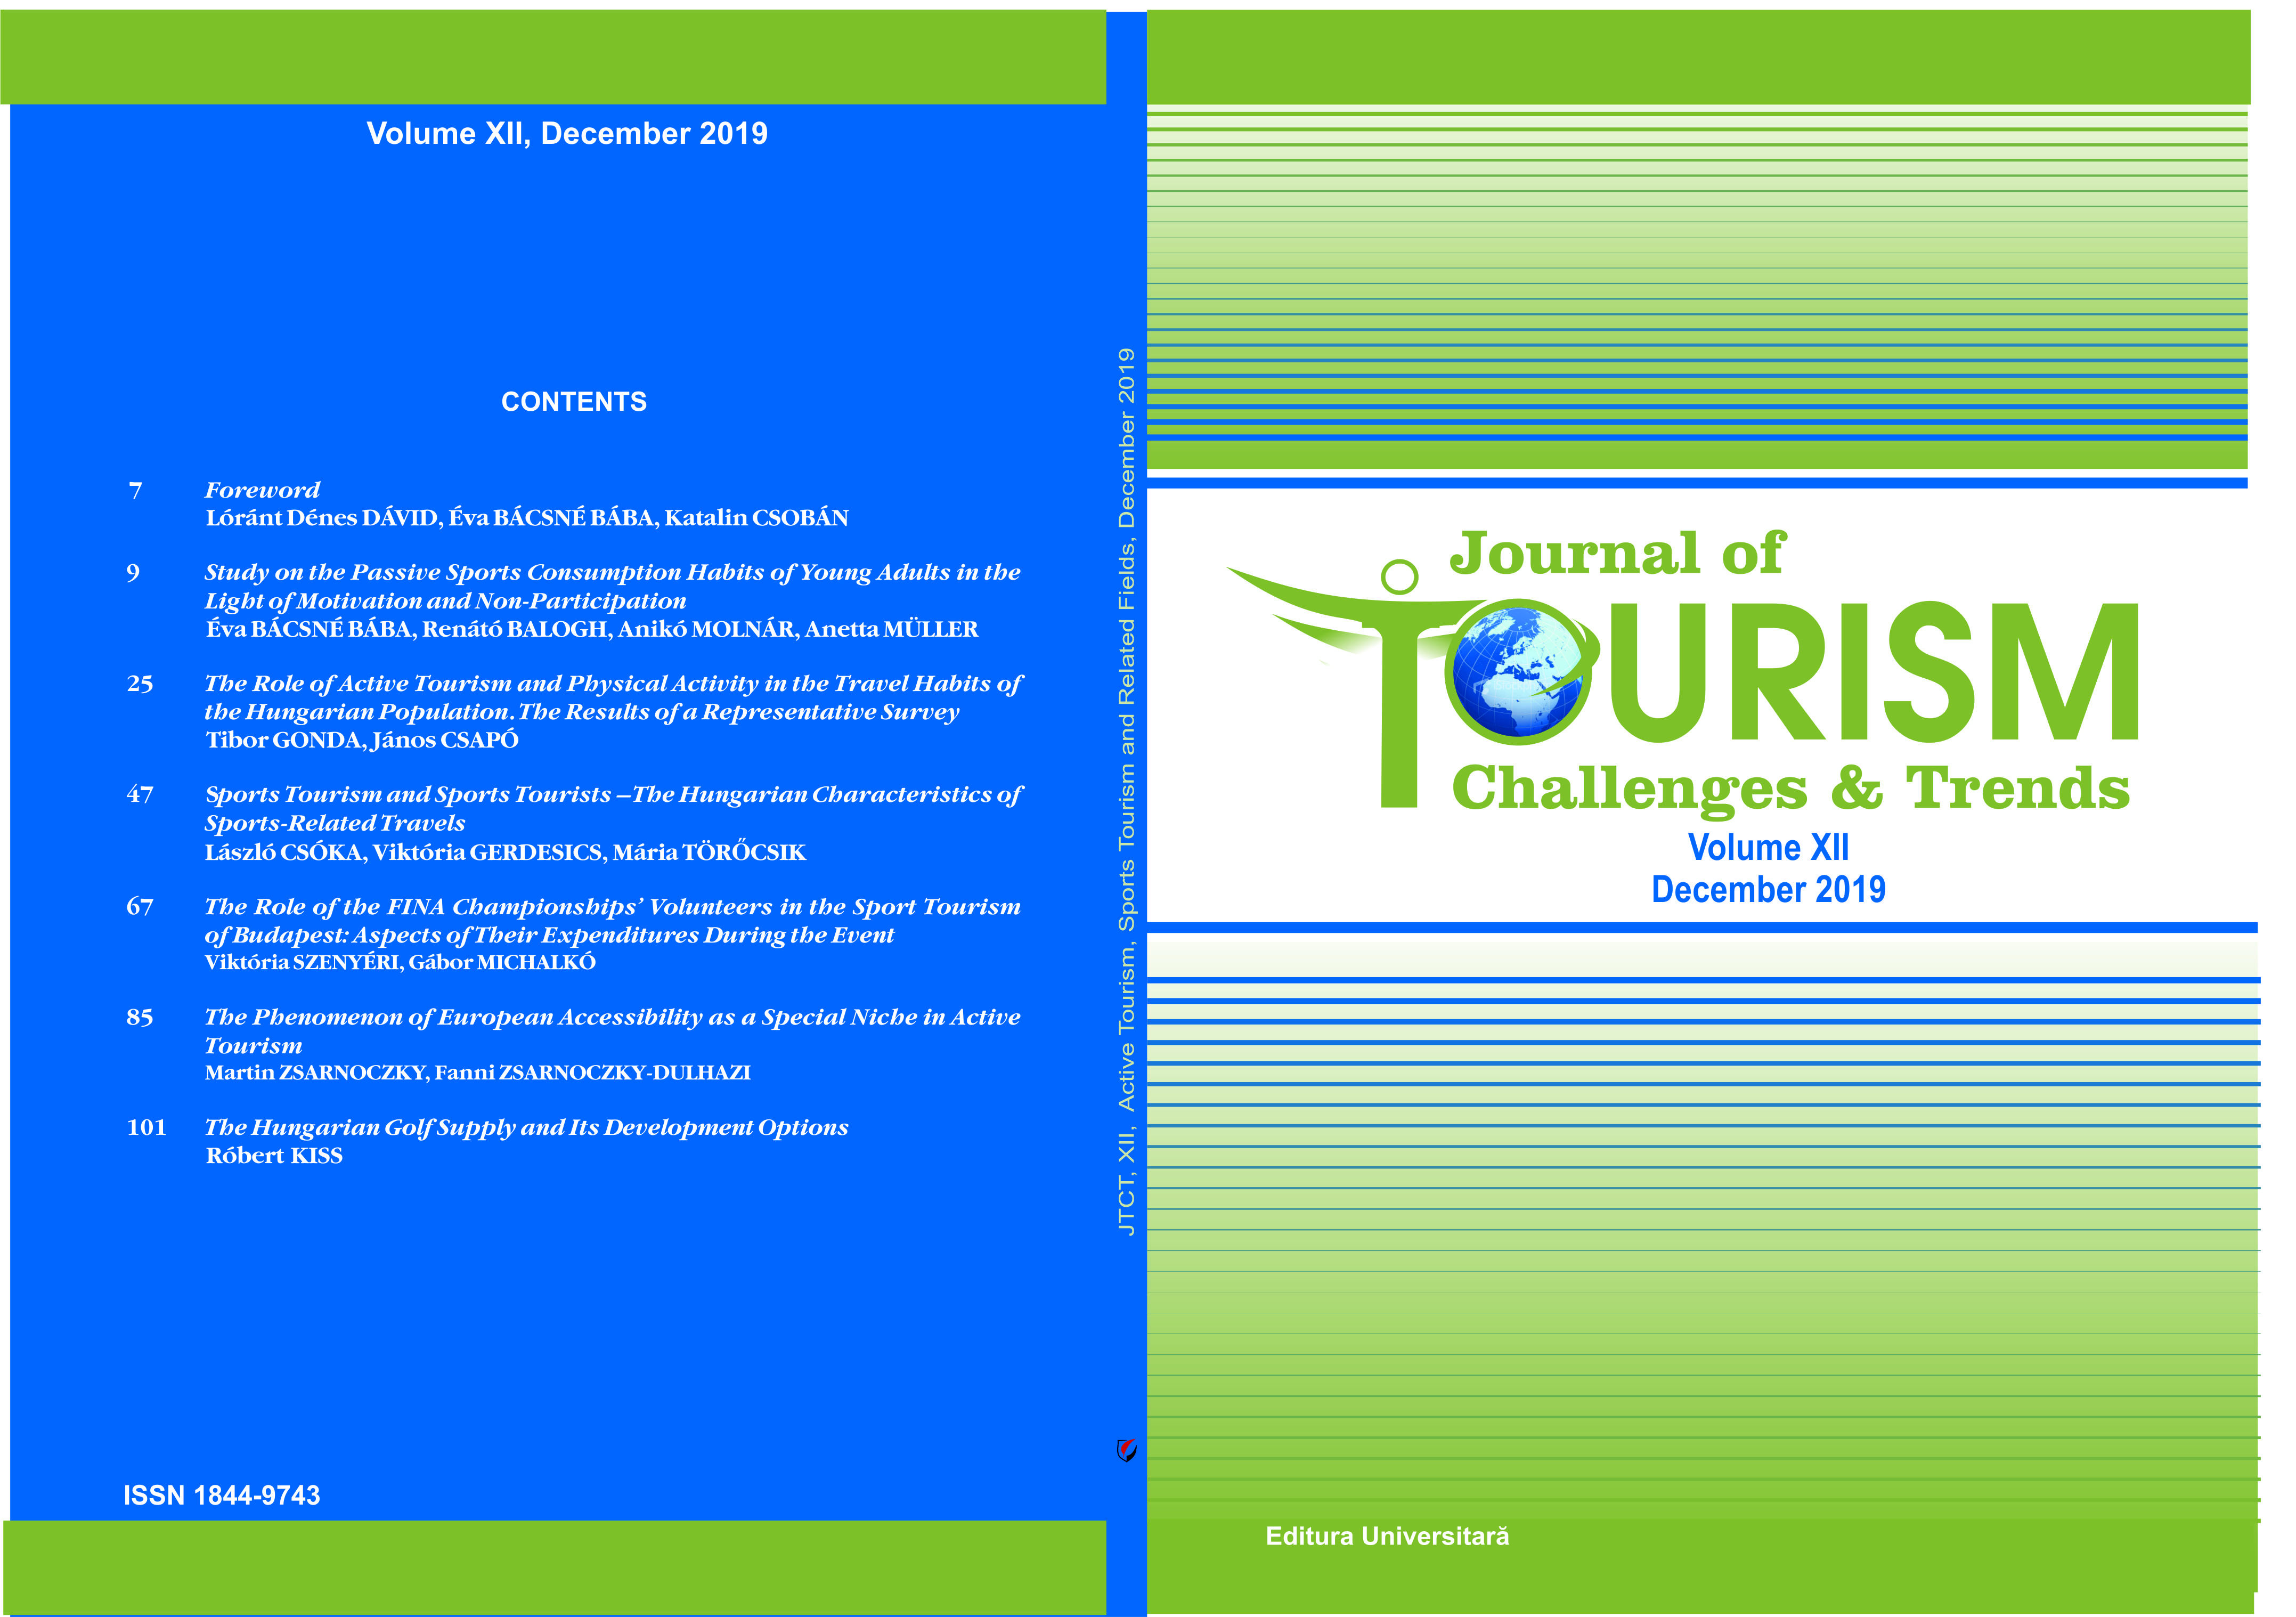 Sports Tourism and Sports Tourists – The Hungarian Characteristics of Sports-Related Travels Cover Image